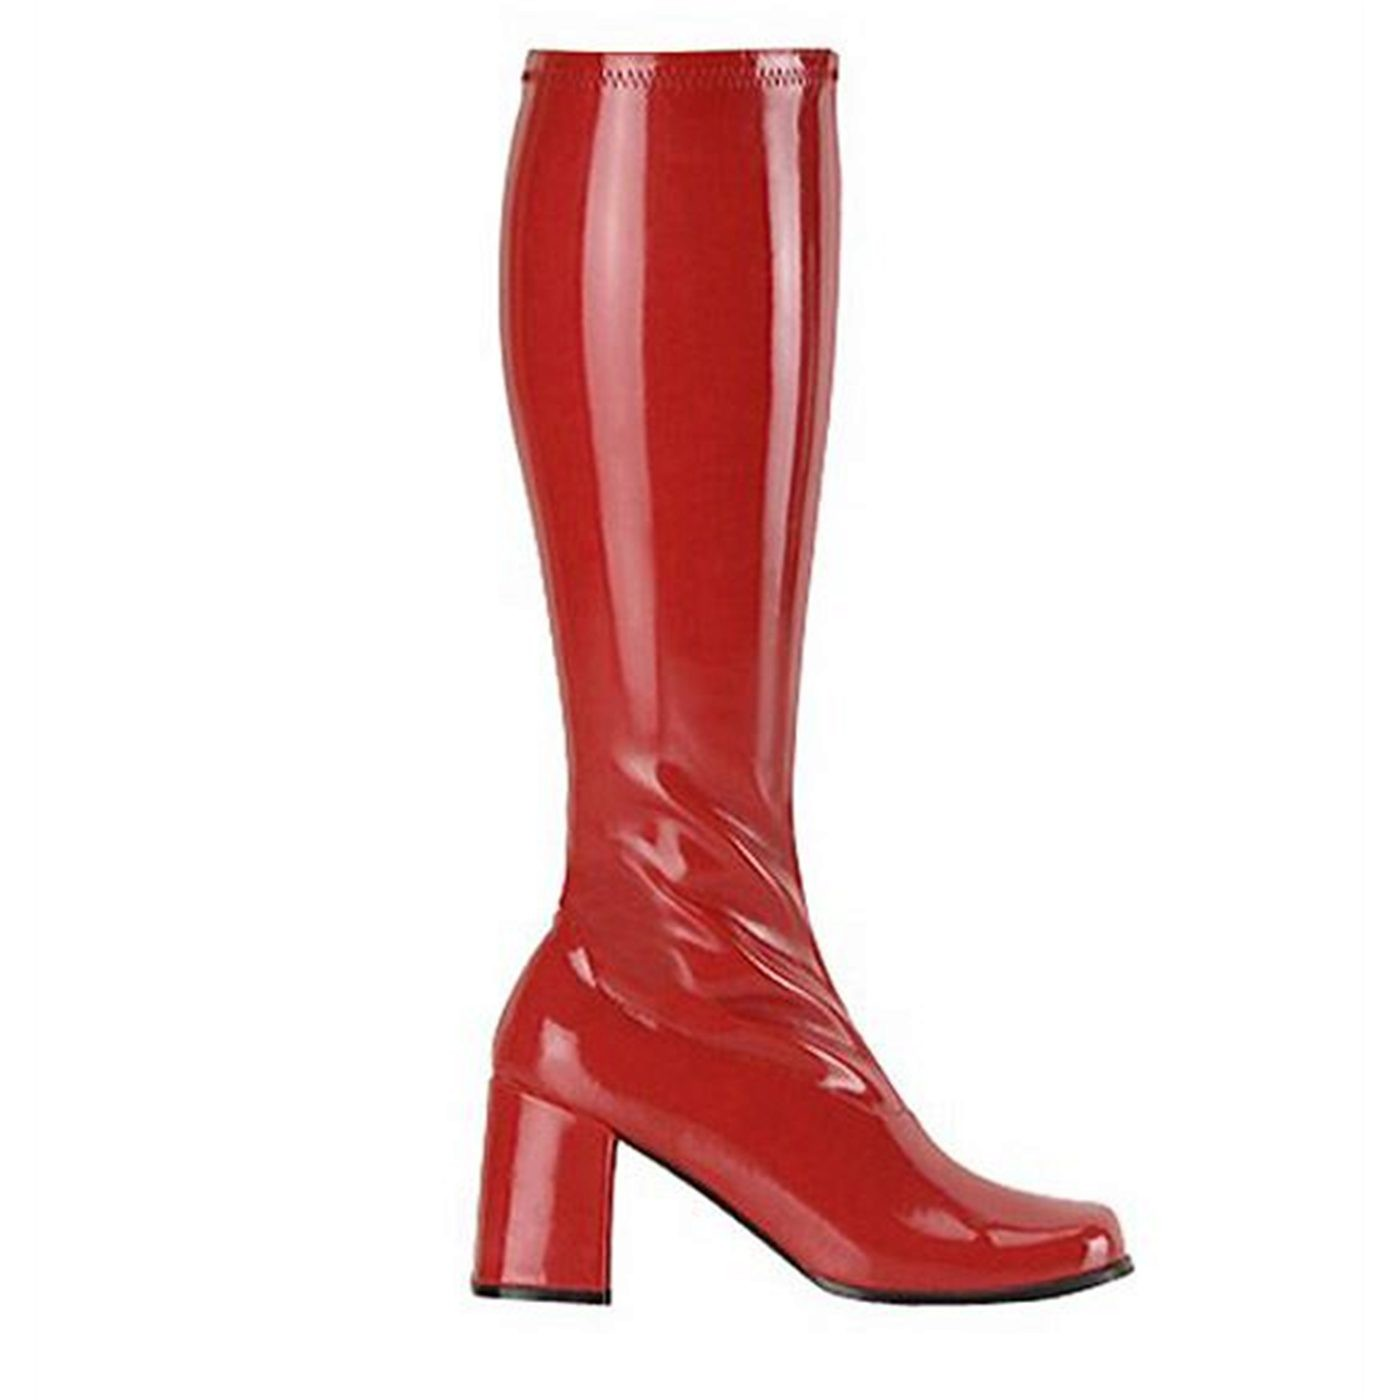 Hero Red GO GO Boots 3 Inch Heel